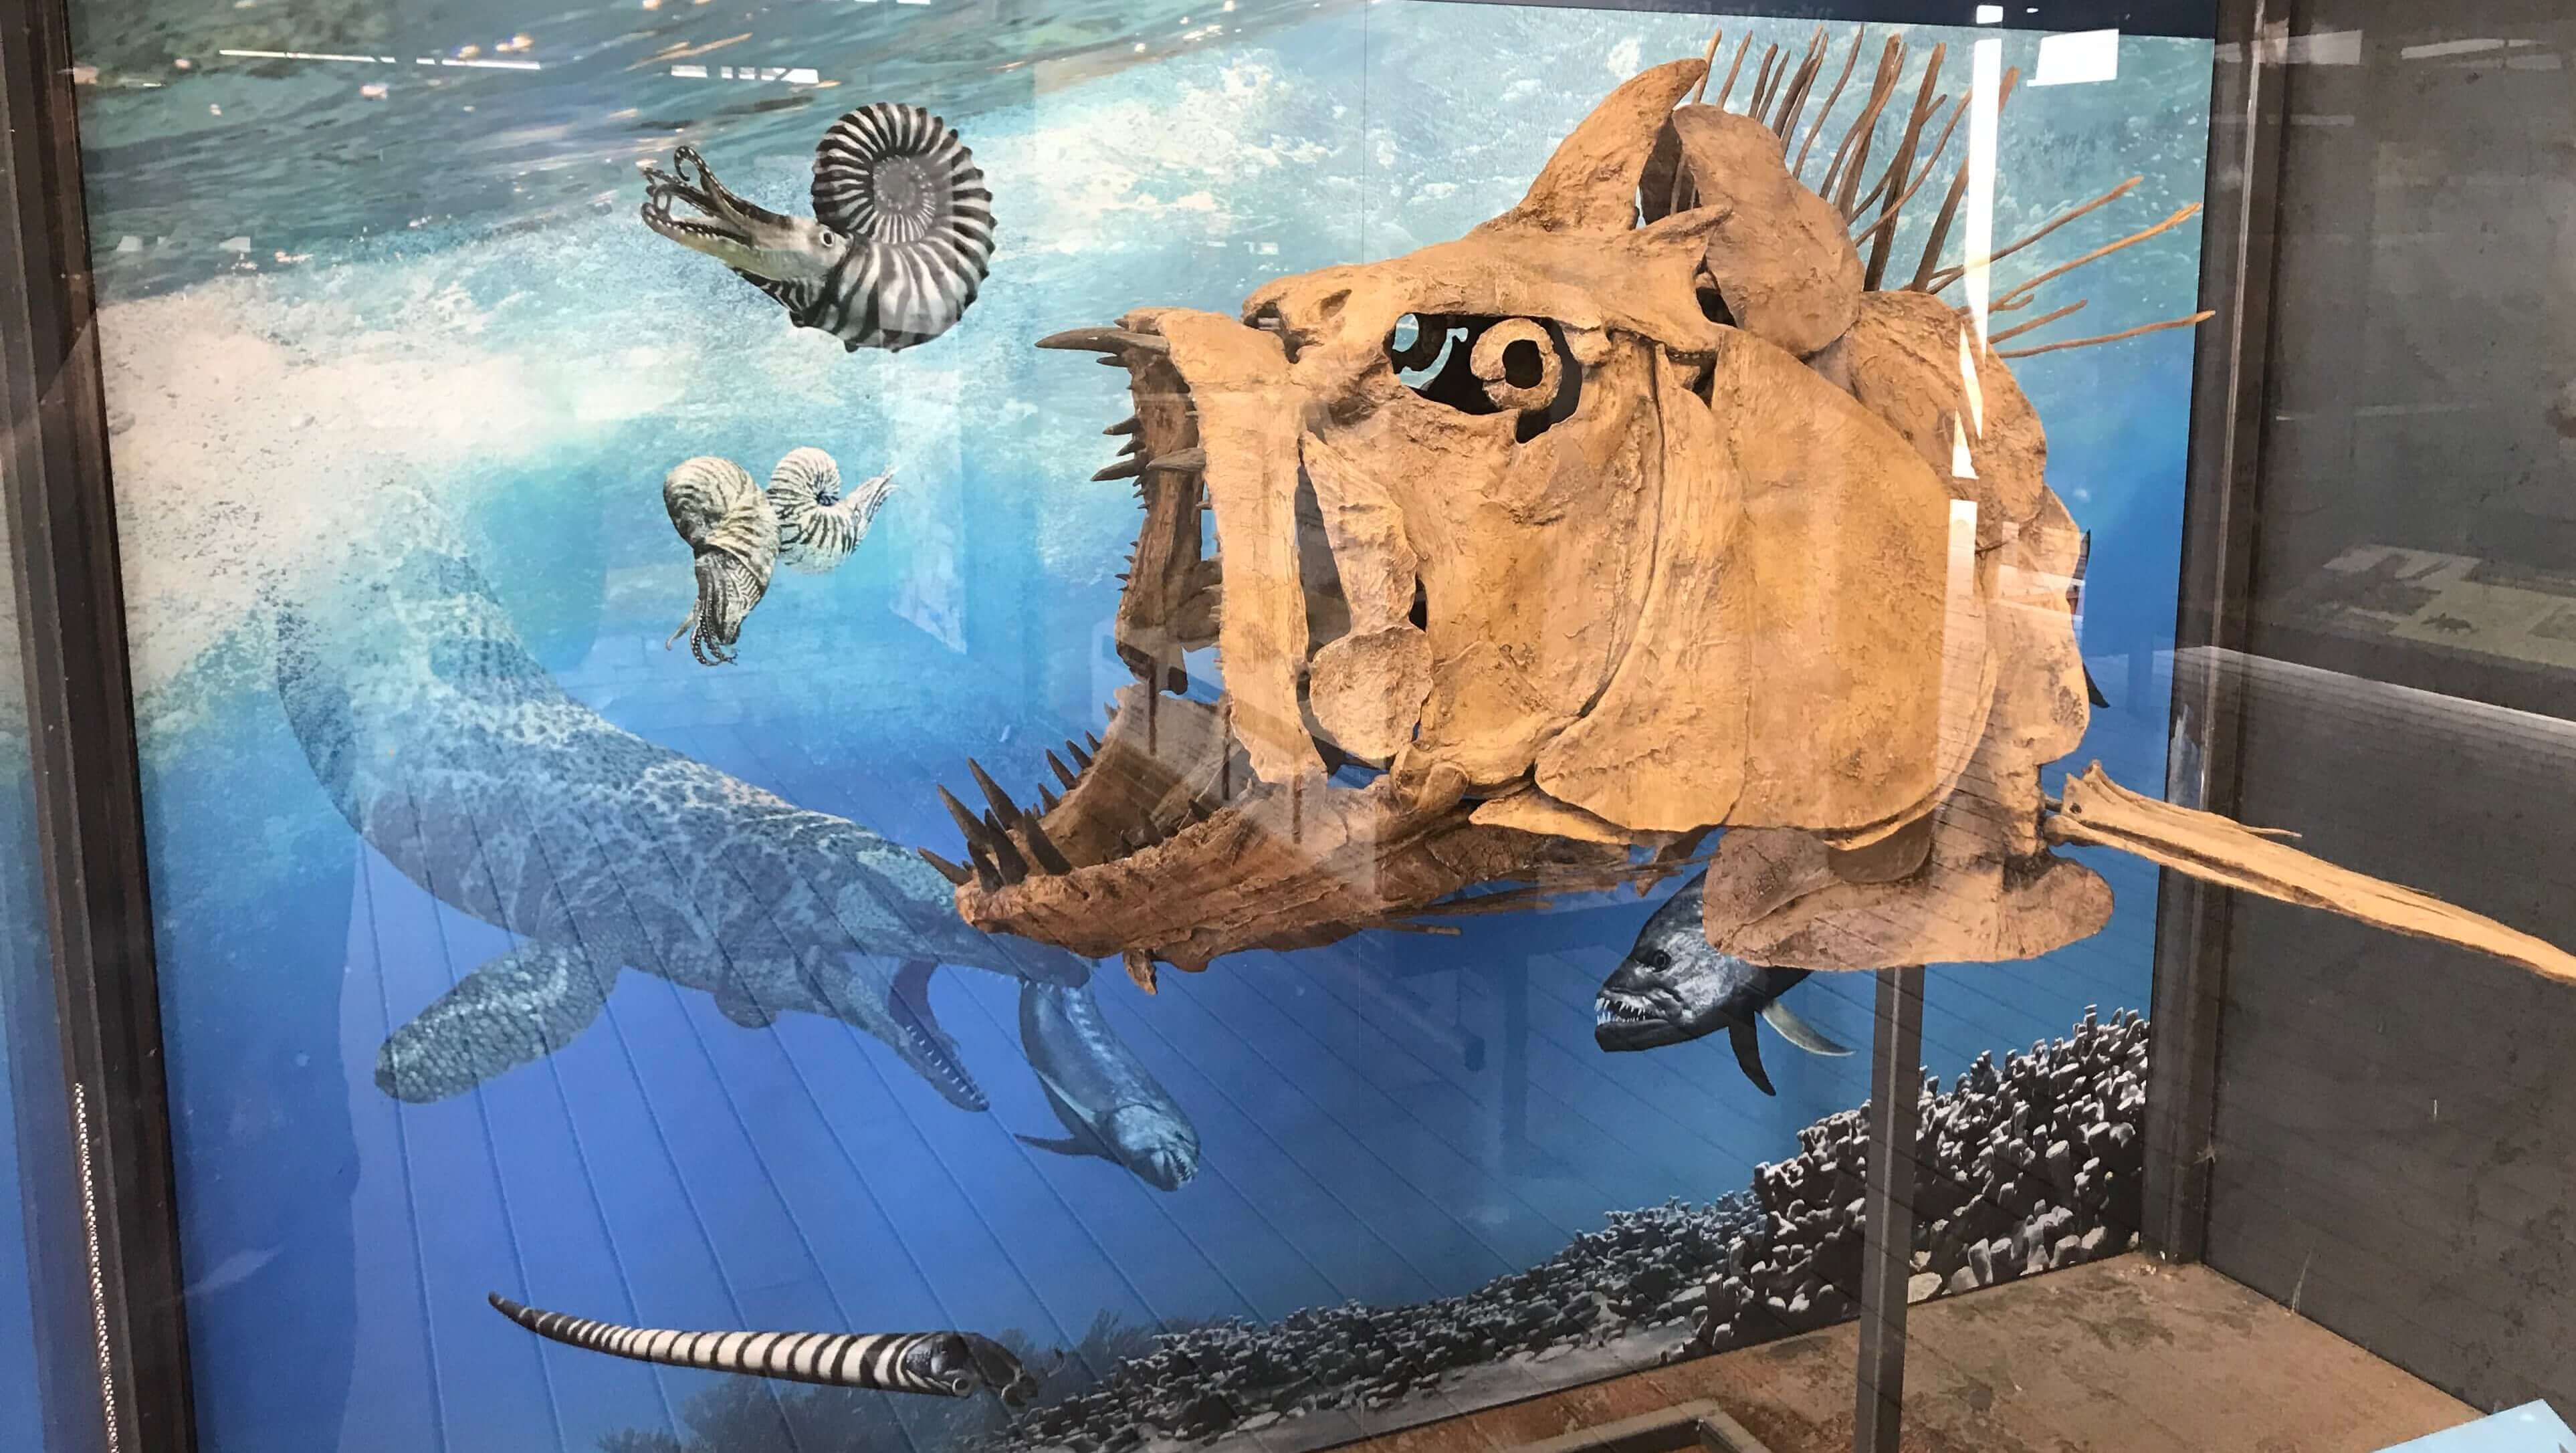 Fossil Discovery Exhibit - Cretaceous Era Fossil